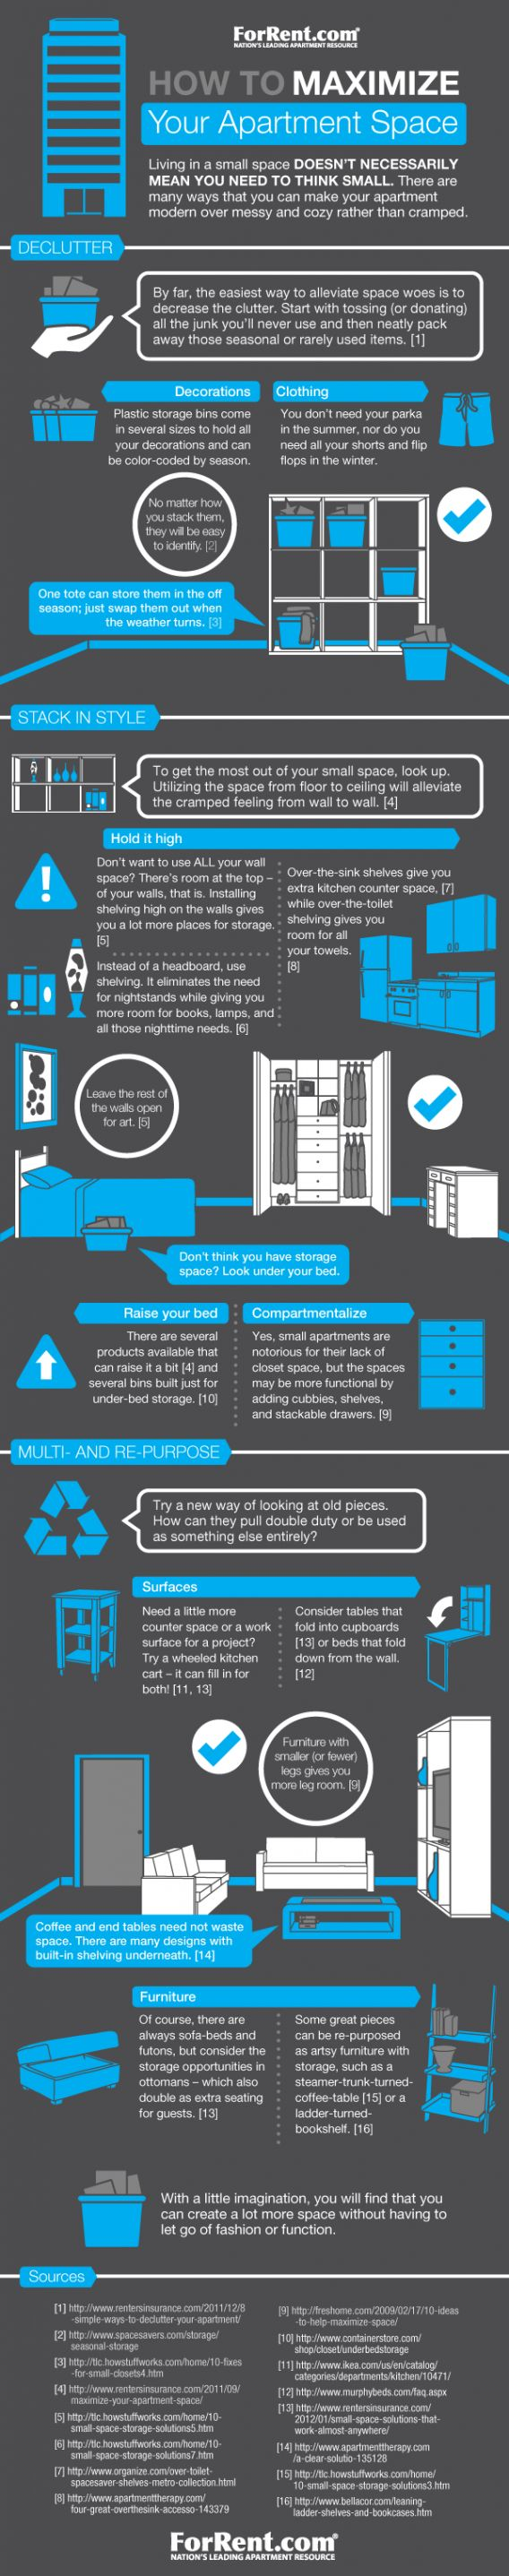 Maximizing small apartment space. @ Pinfographics - Lots of good advice for